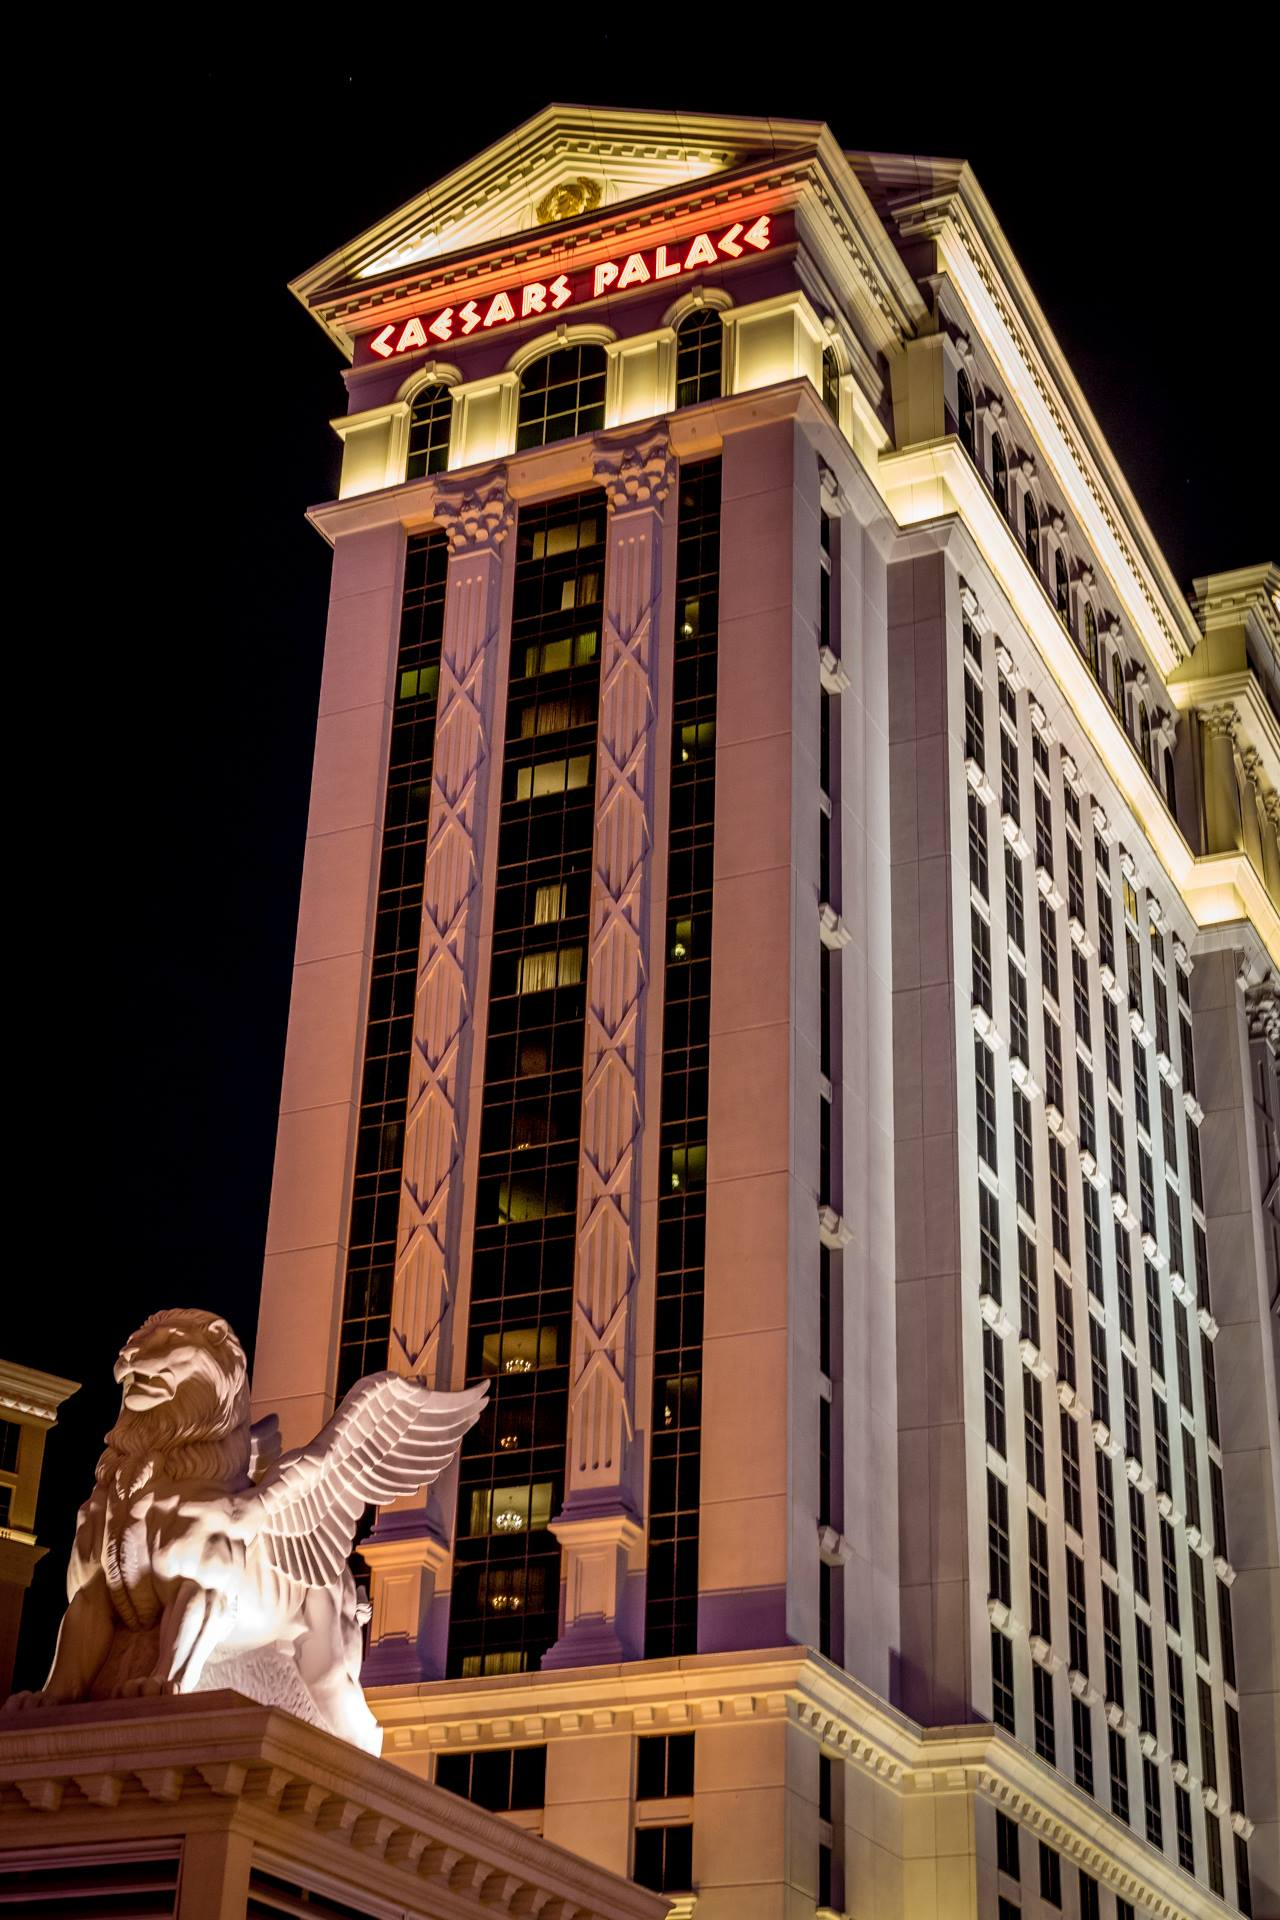 Ceasar's Palace - Ceasar's Palace in Las Vegas, Nevada. by D Scott Smith